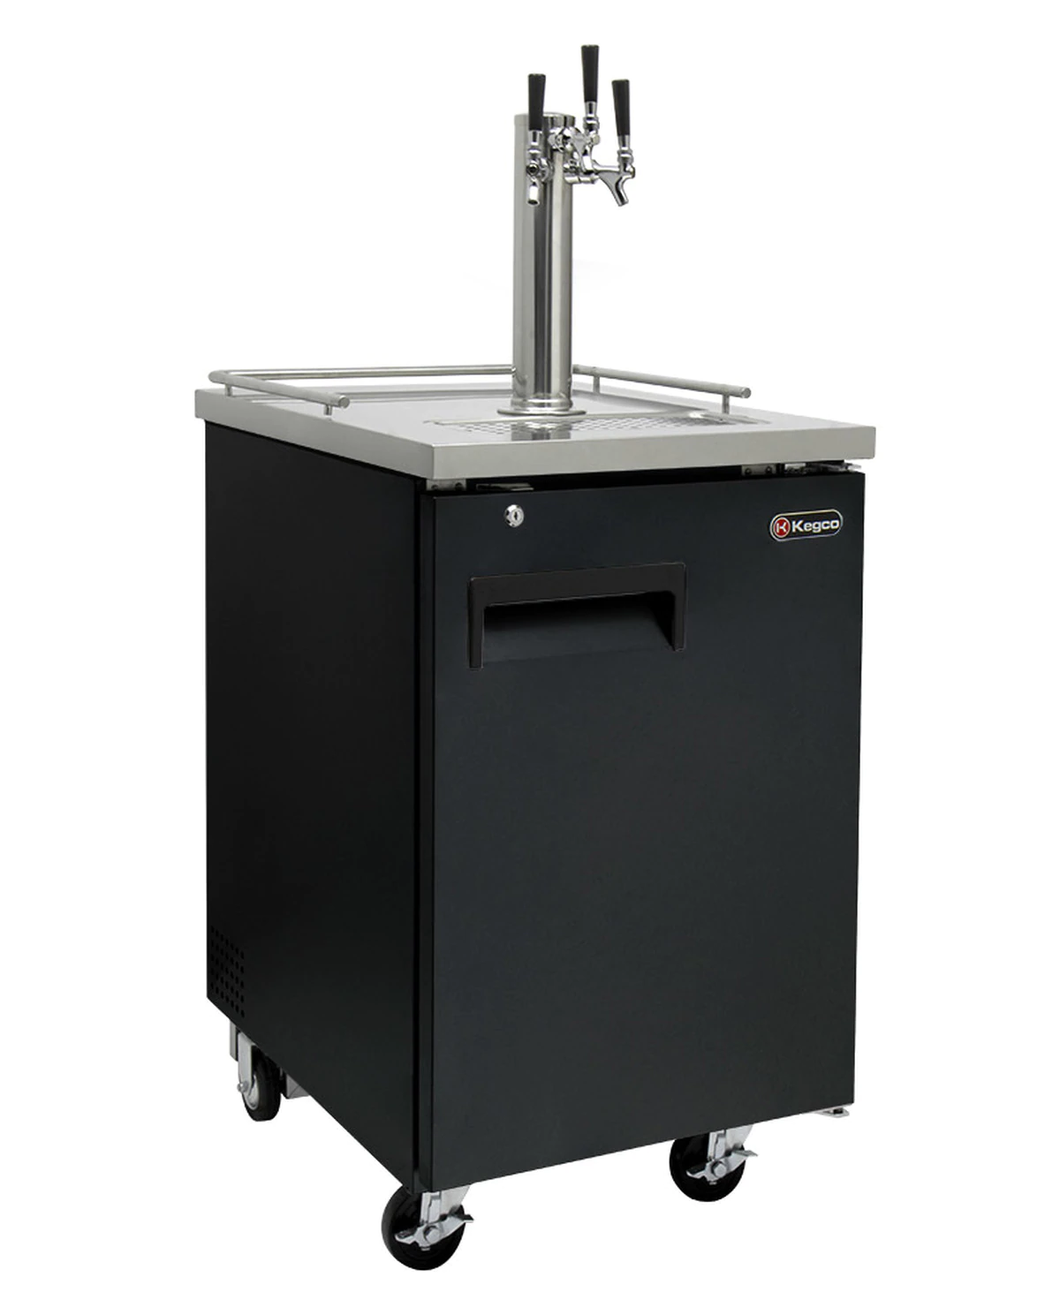 THREE TAP COMMERCIAL GRADE KEGERATOR - BLACK